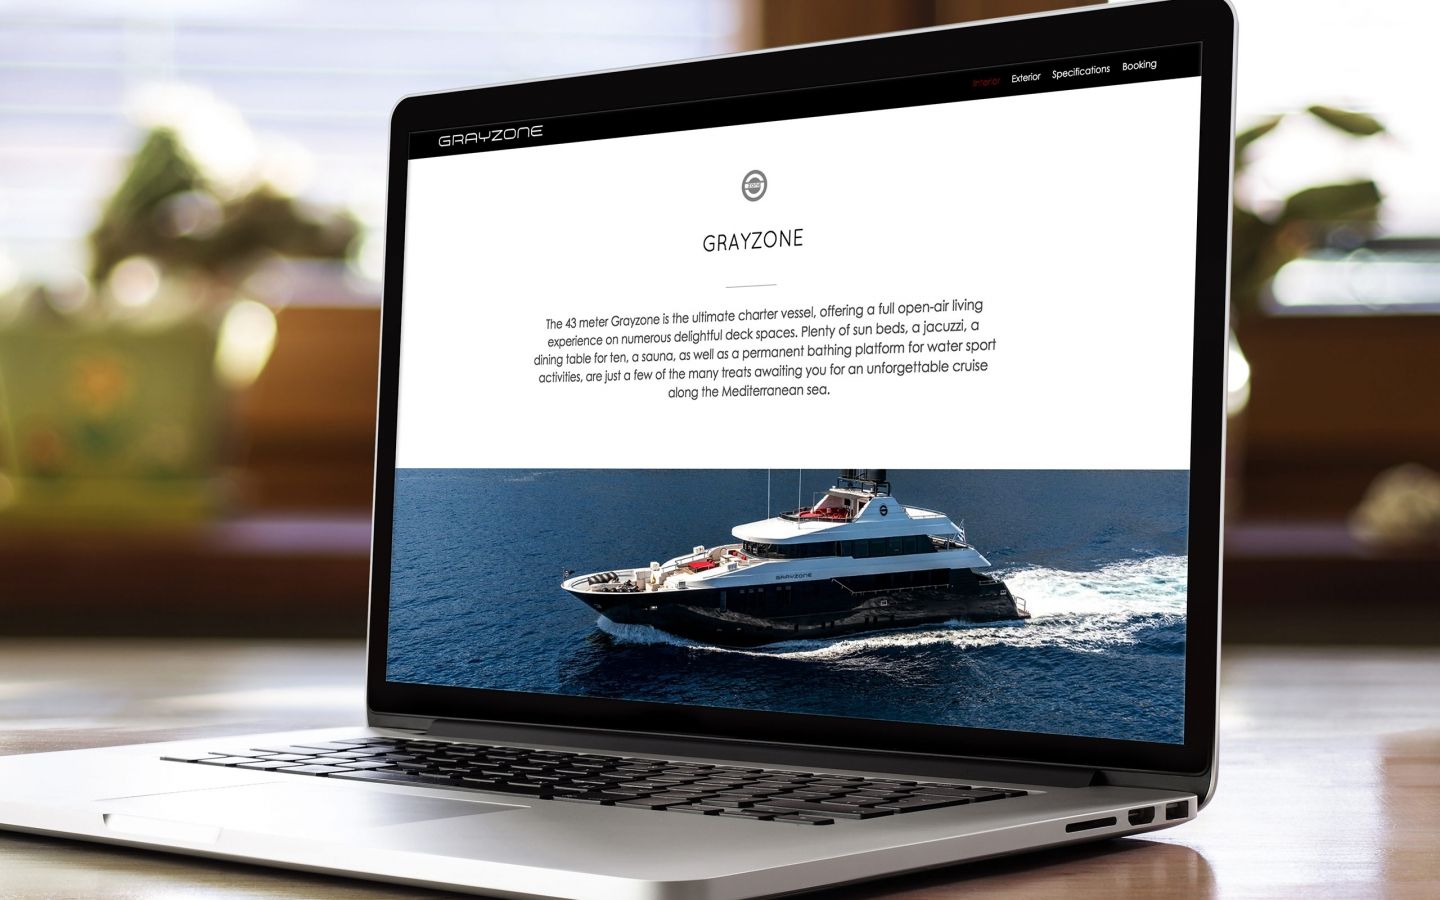 Grayzone Motor Yacht Branding Project by Crevisio